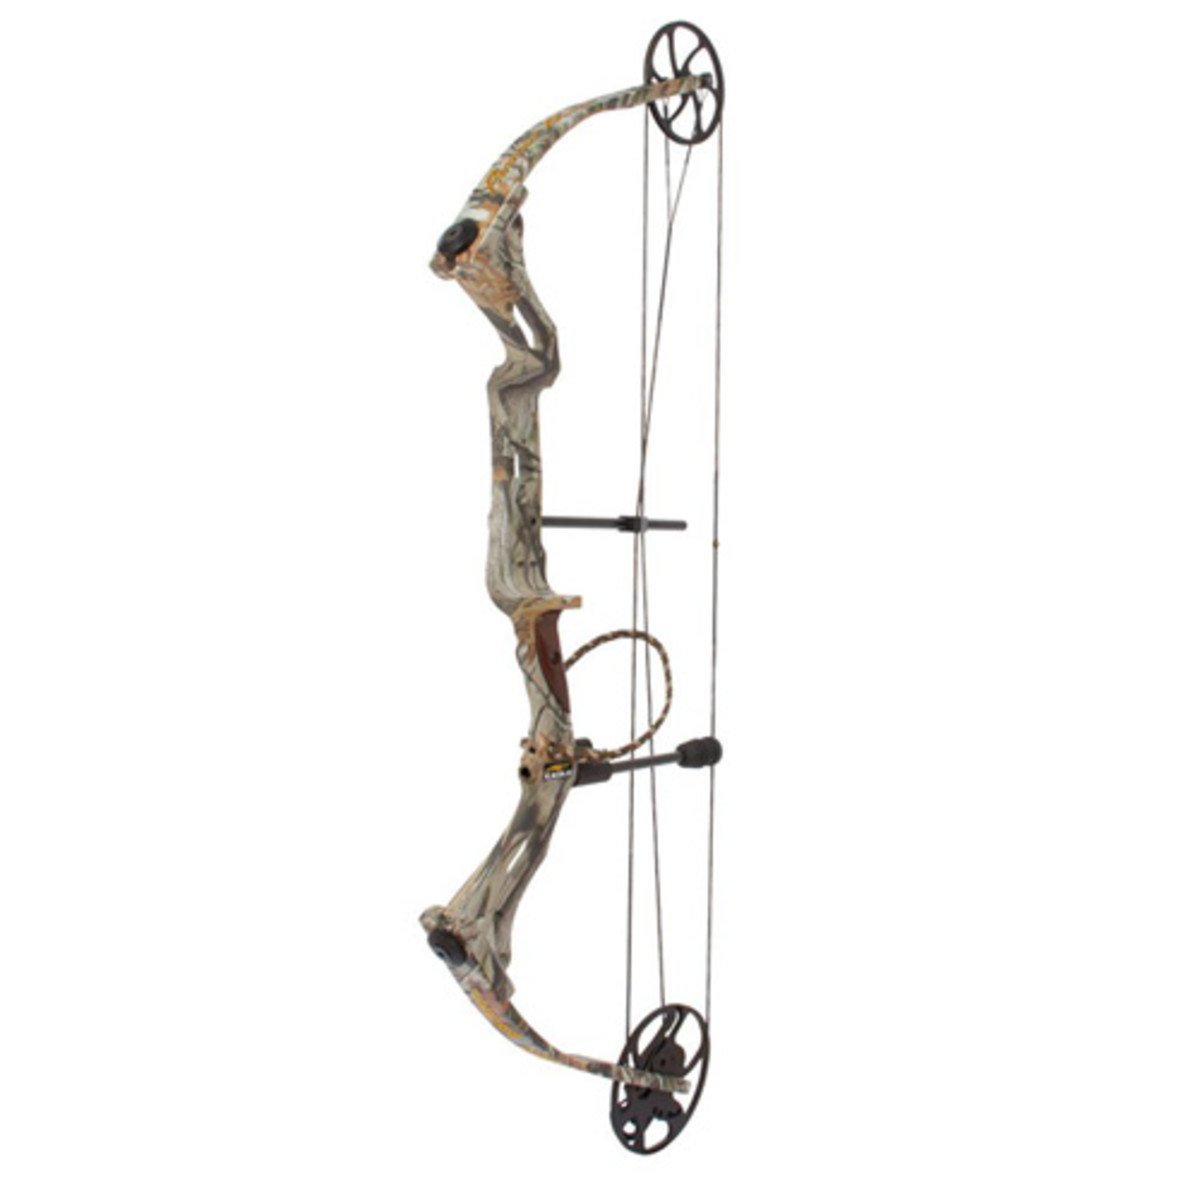 "Camo Pattern Next Vista Cam Eagle High Performance Cam 26"" - 31"" (mods included) Draw Lengths 26"" - 31"" (mods included) Draw Weights 50-60 lbs, 60-70 lbs Let Off 80% Axle to Axle Width 32"" Mass Weight 3.65 lbs Brace Height 7.75"" String Premium Stone"